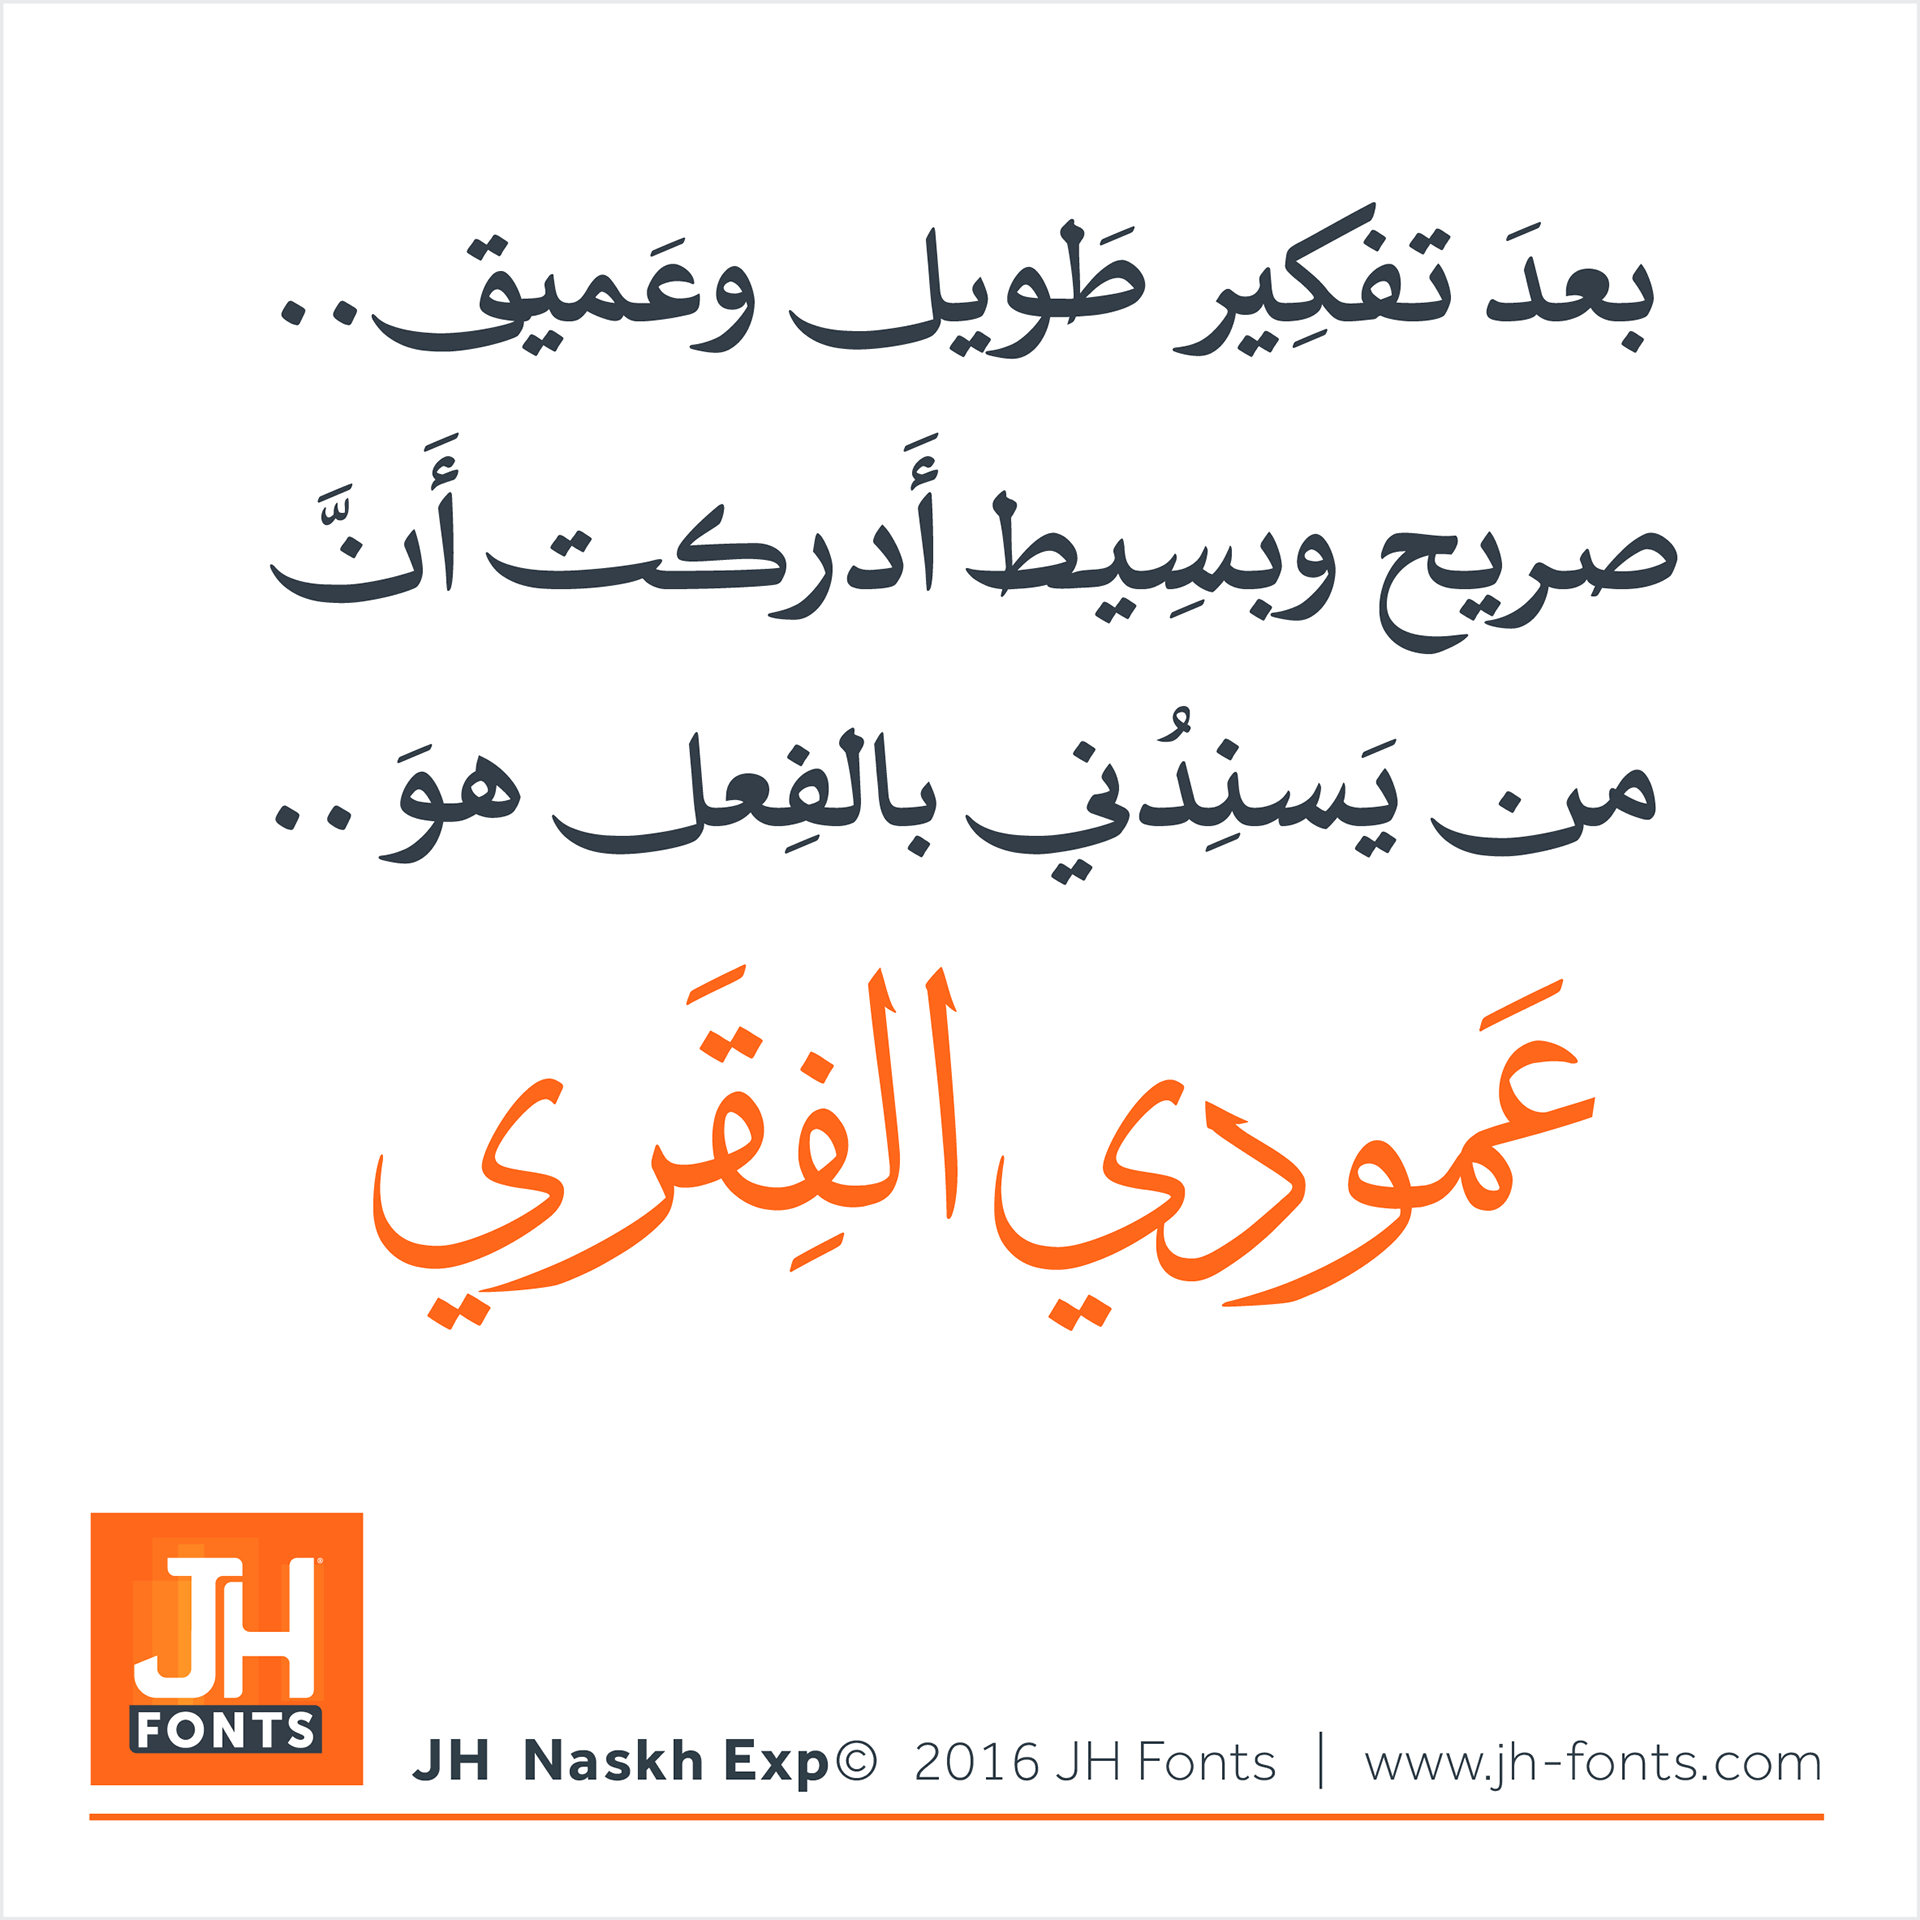 JH Naskh expanded Posters on Behance